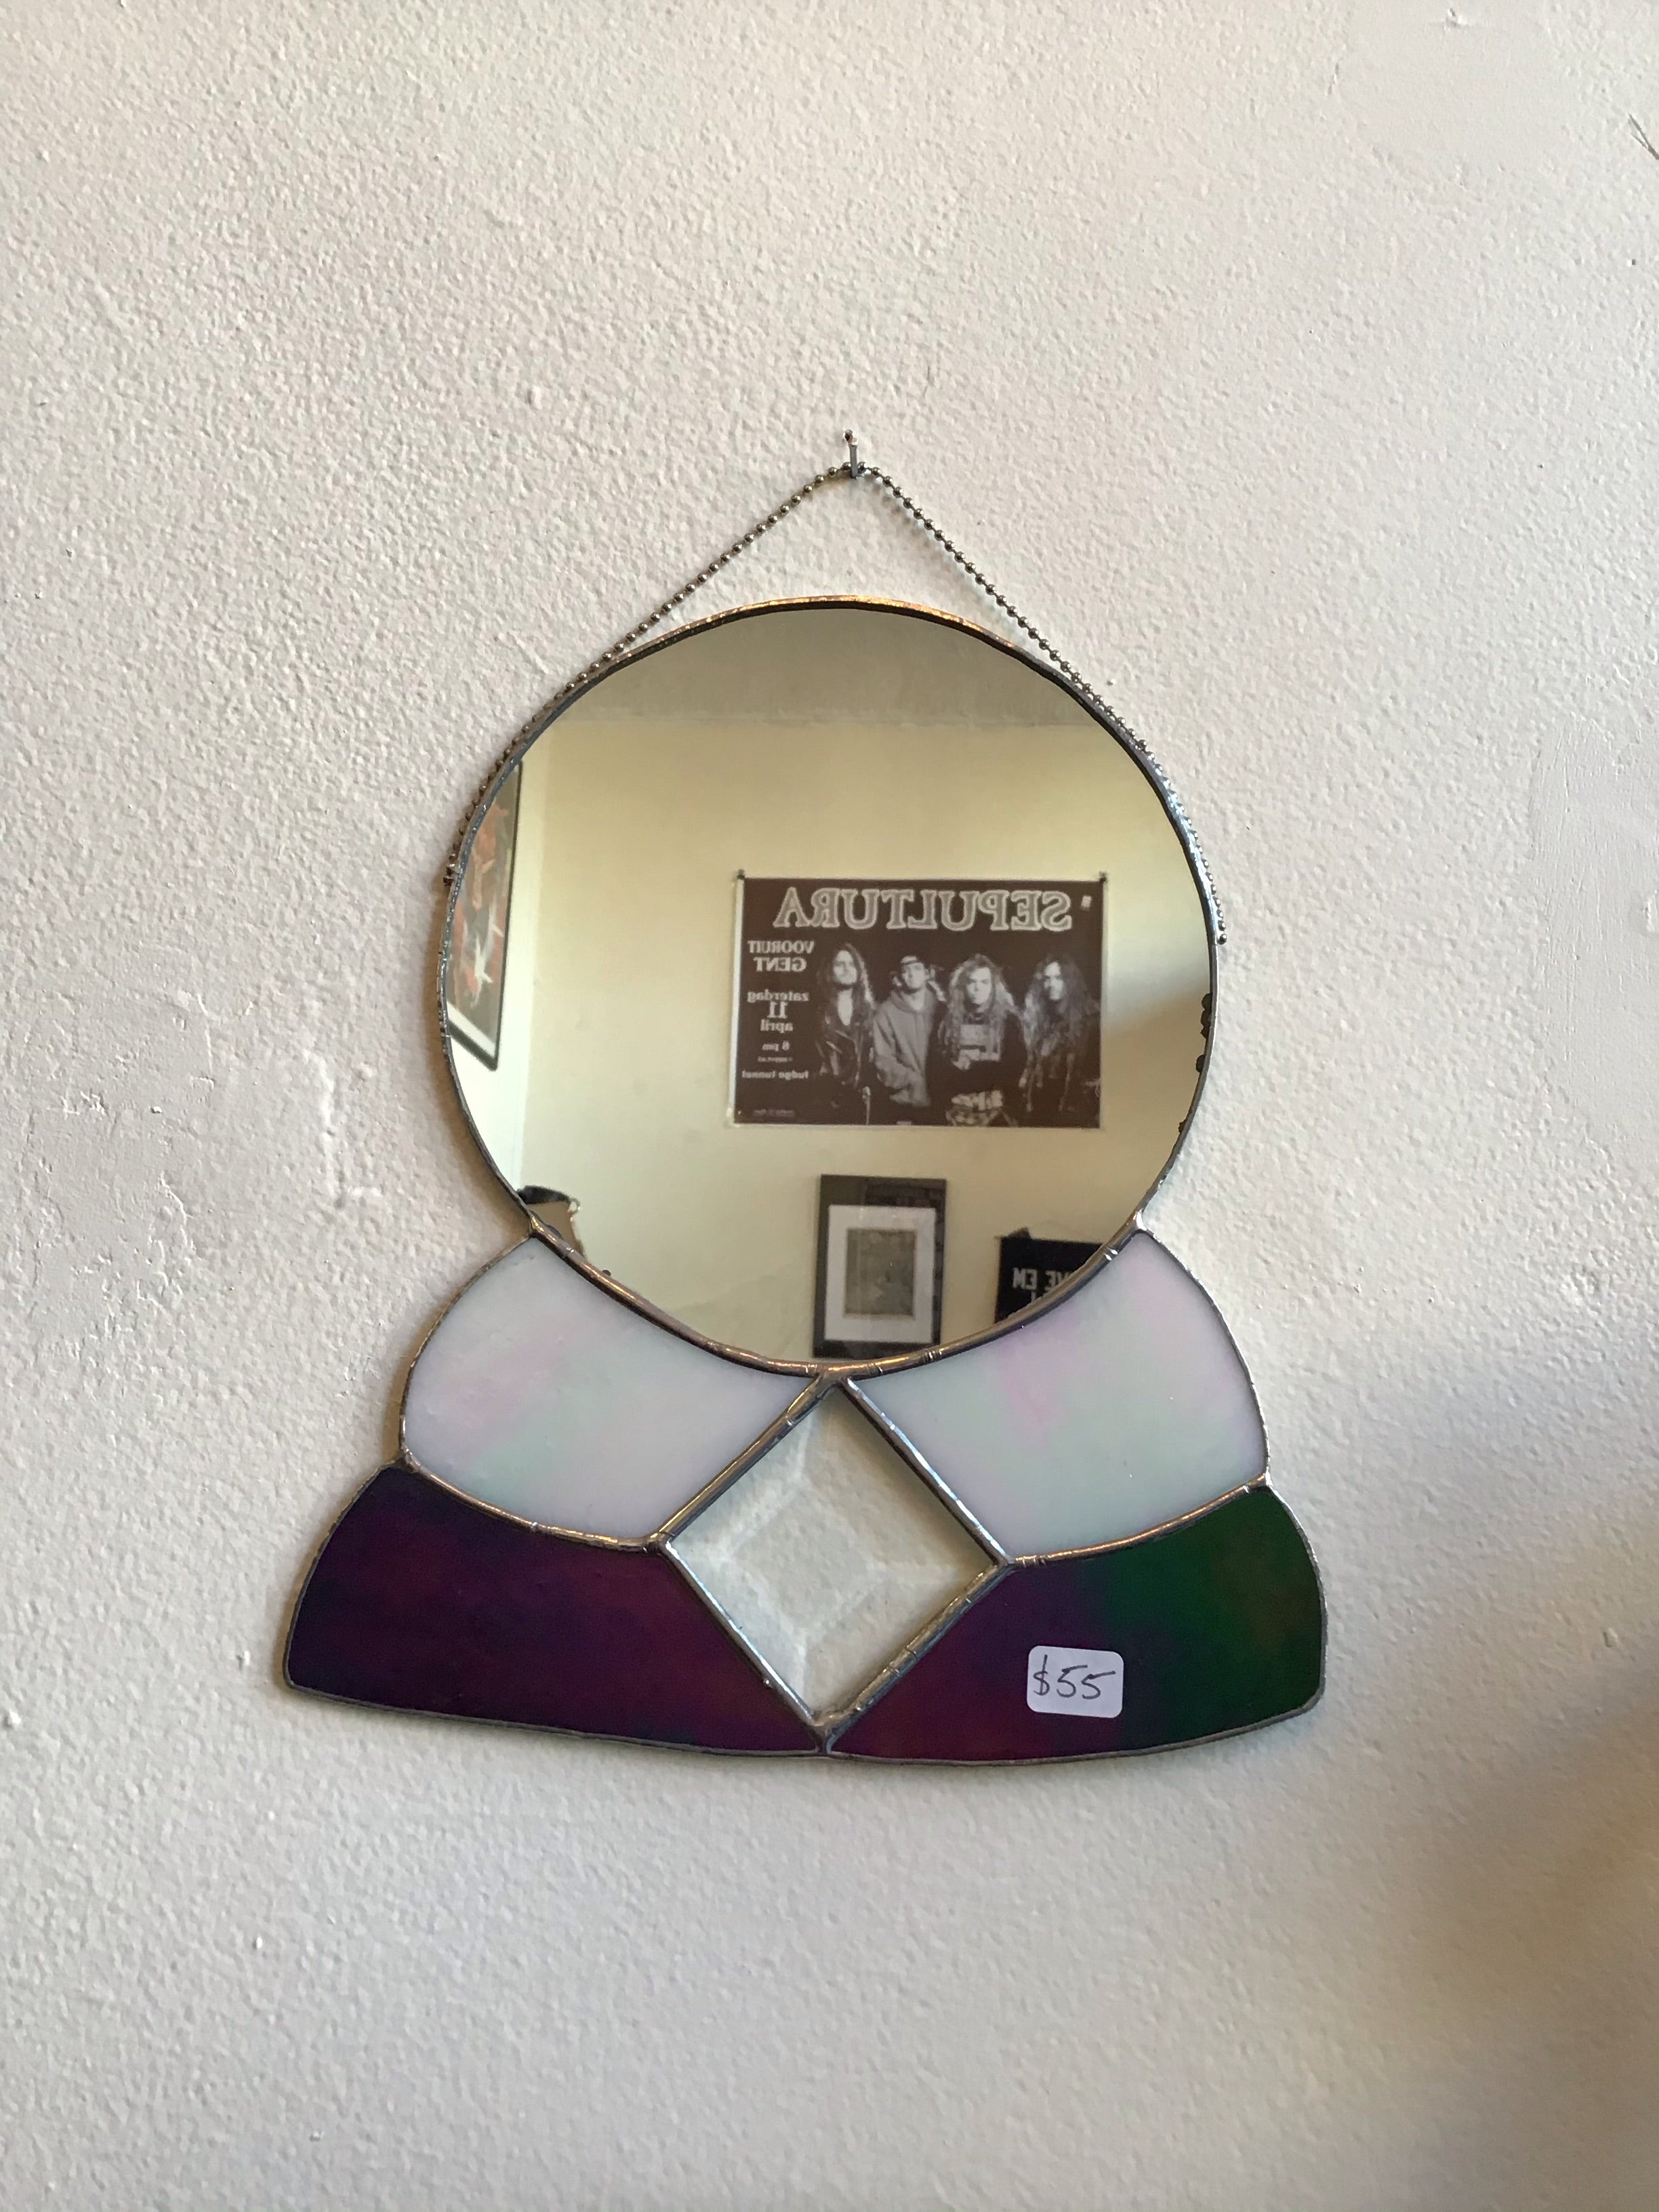 Crystal Ball Stained Glass Mirror by Imaginary Mirrors